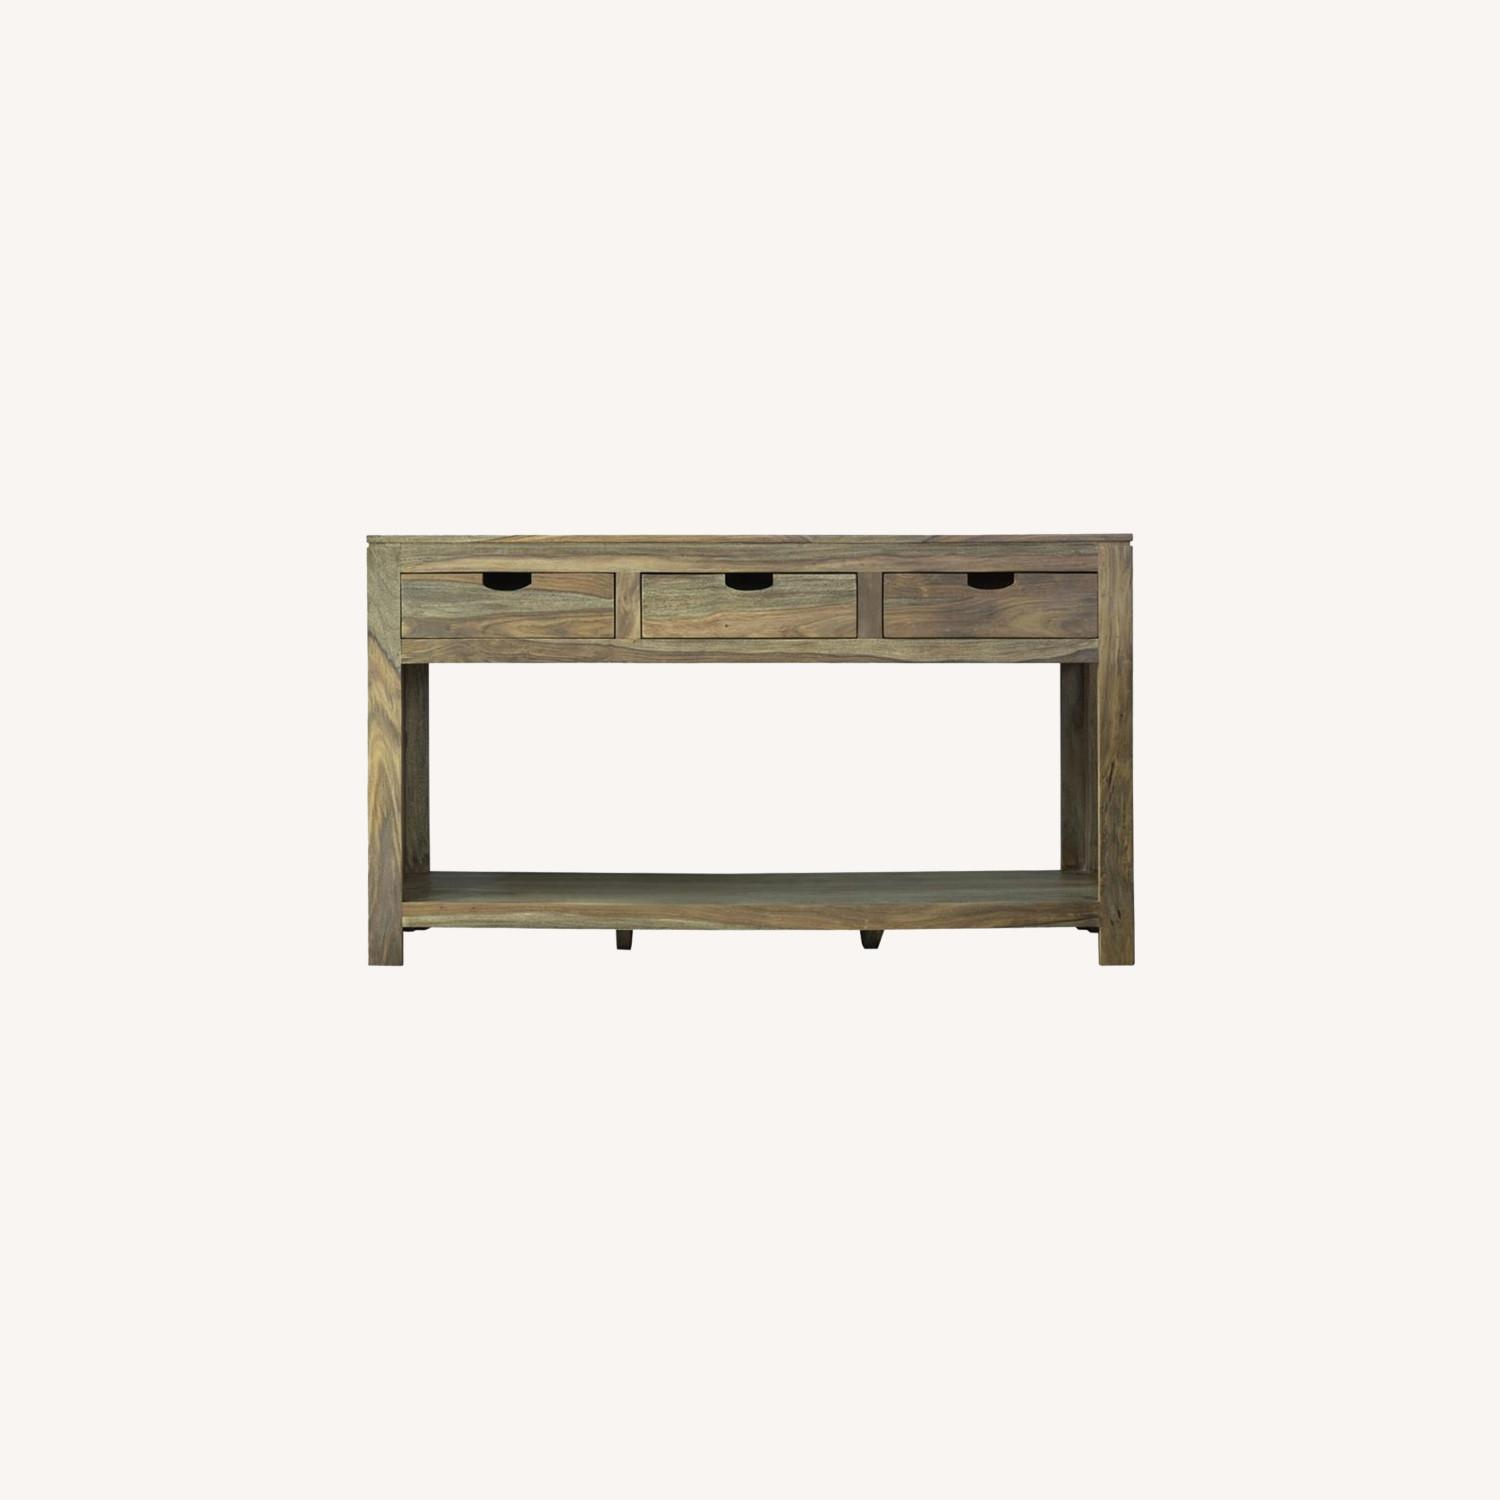 Console Table In Sheesham Grey Finish W/ 3 Drawers - image-3